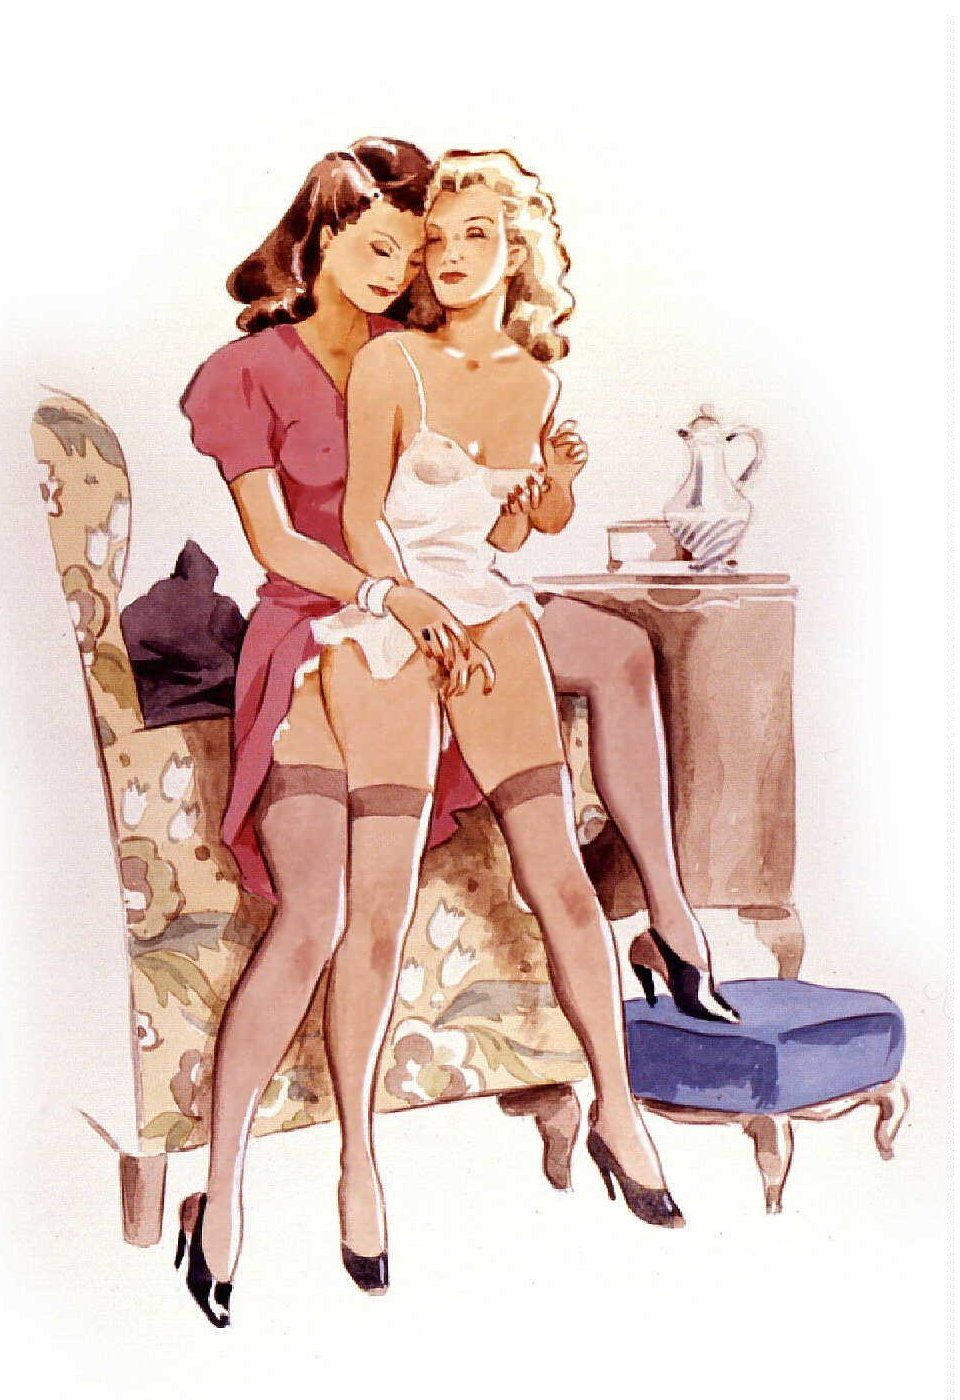 pinlisa on cartoon | pinterest | lesbian art, sexy cartoons and